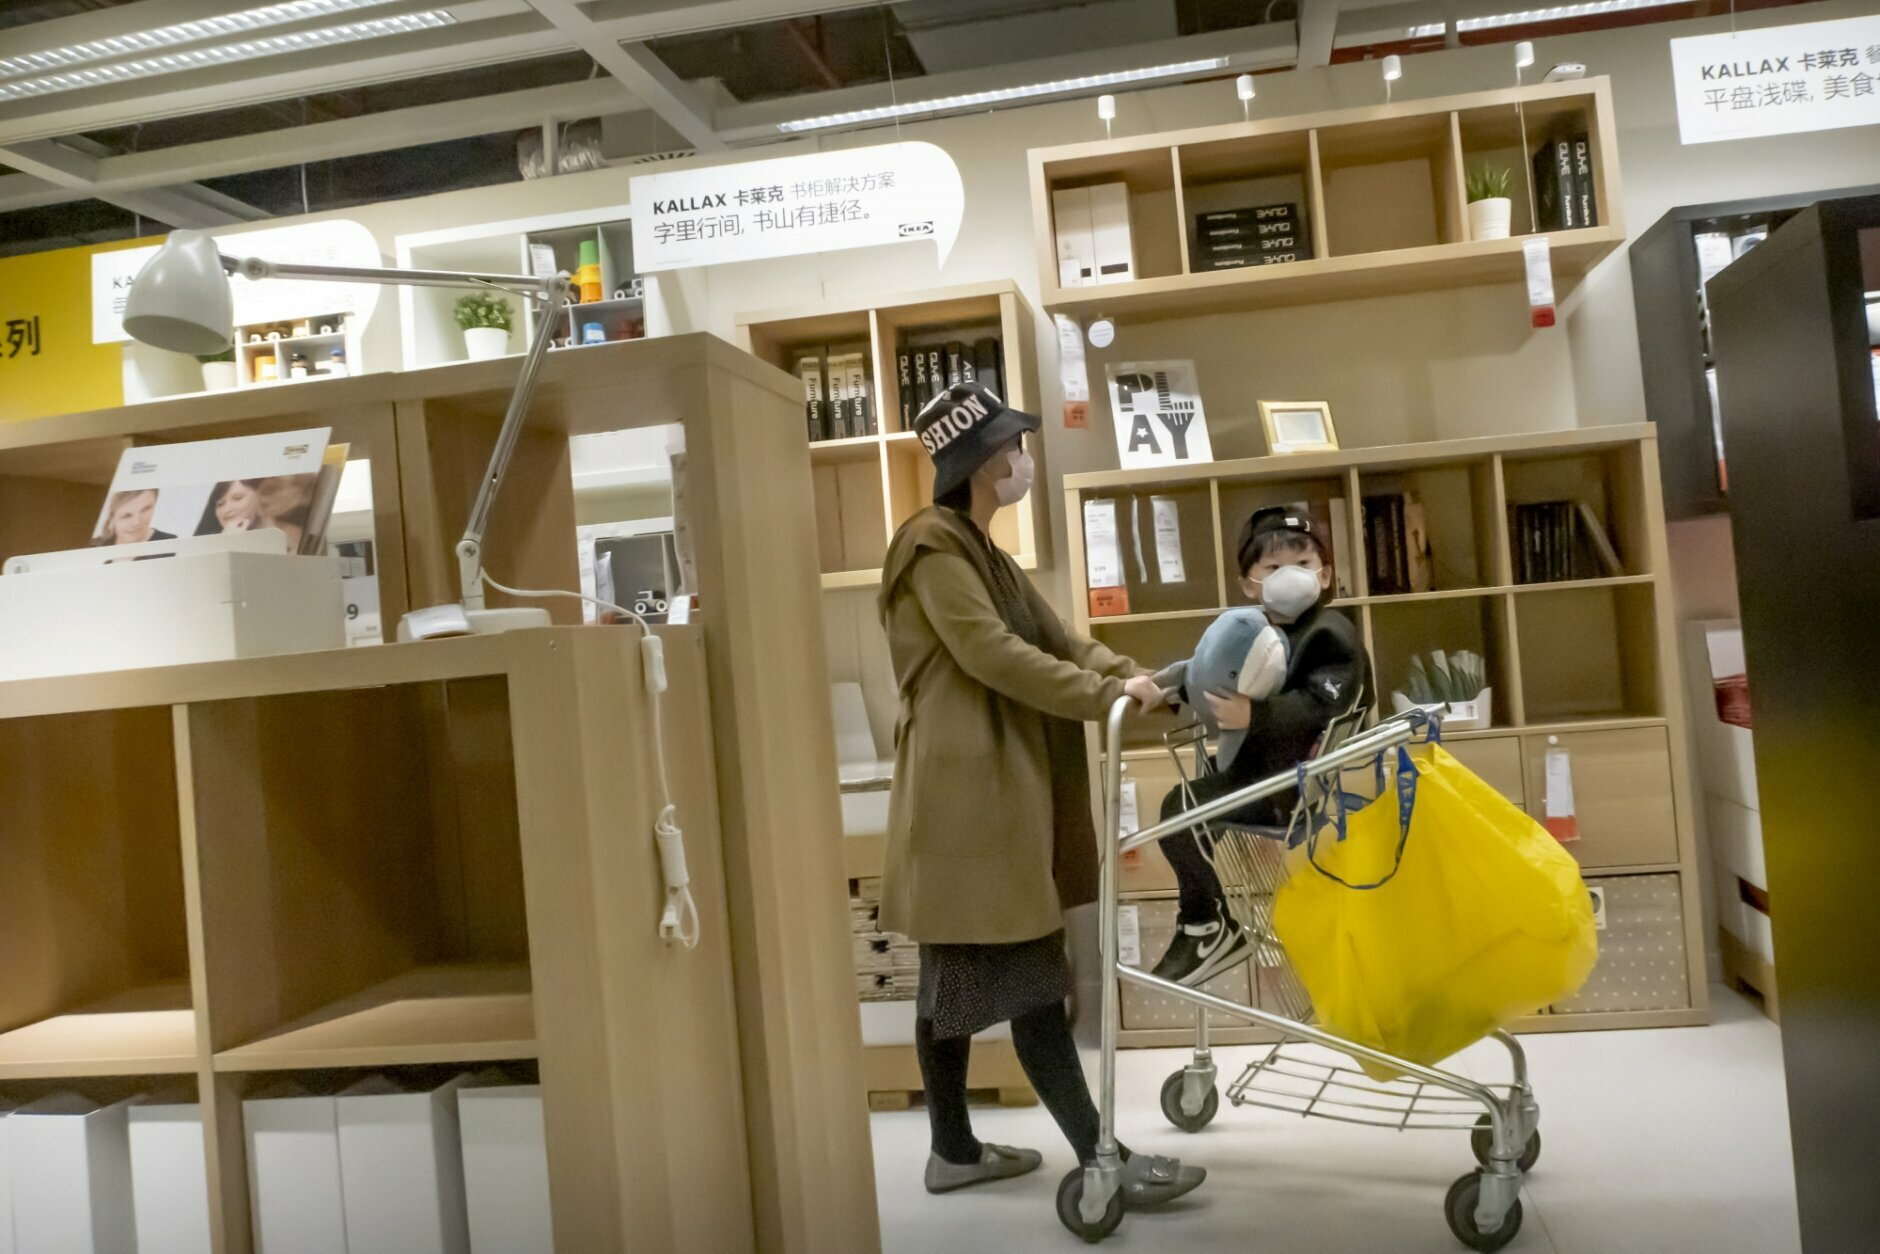 Placard En Kit Ikea as virus spreads, growing need for hospital beds, supplies